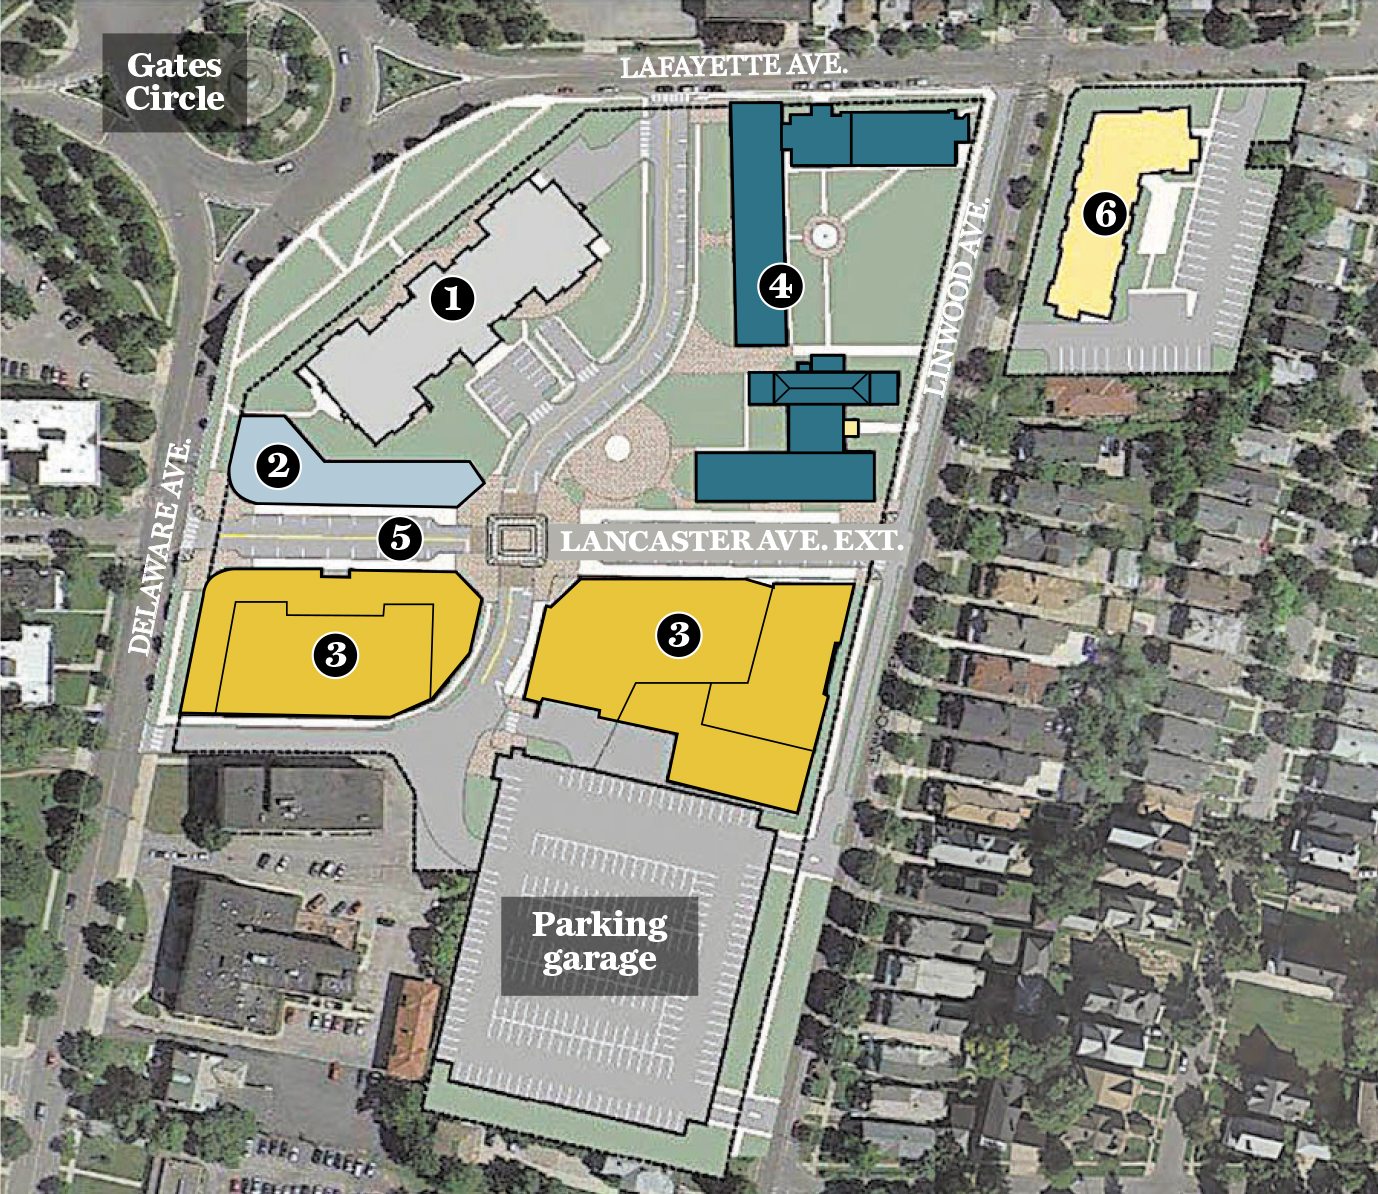 TM Montante Development and Morgan Communities are developing a $150 million redevelopment plan for the former site of Millard Fillmore Gates Hospital. (Buffalo News illustration)